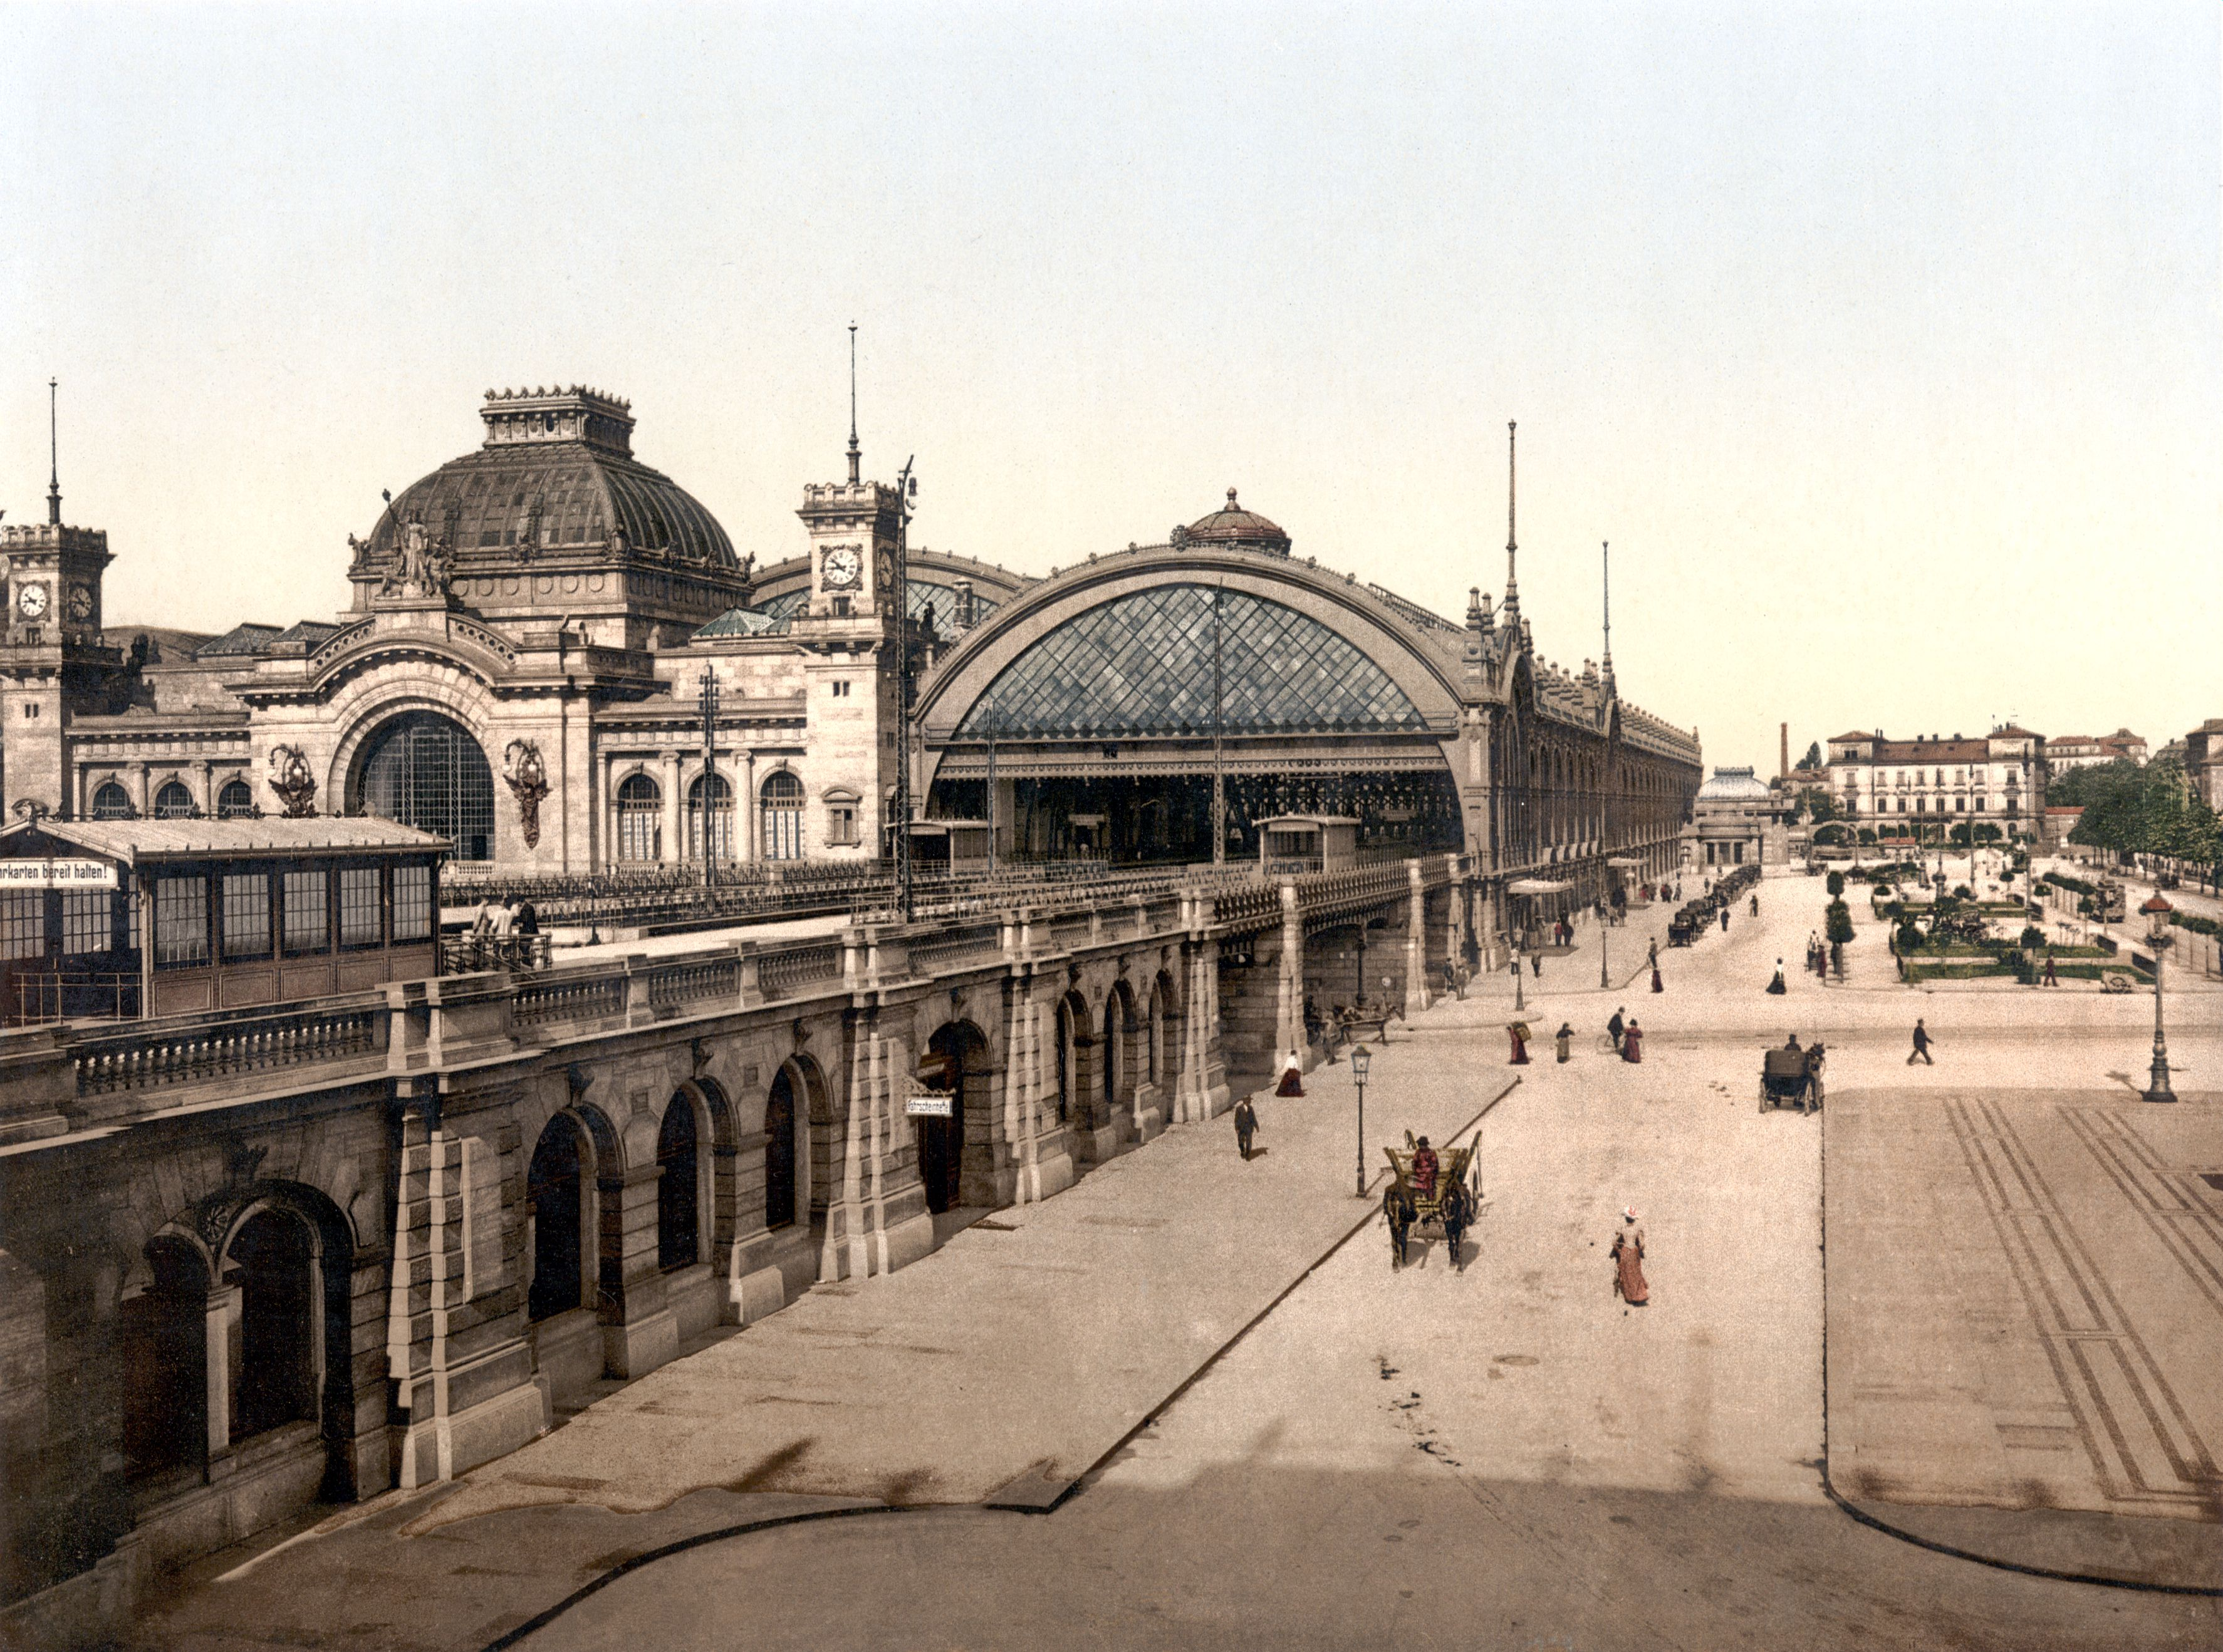 https://upload.wikimedia.org/wikipedia/commons/3/37/Dresden_Hauptbahnhof_1900.jpg